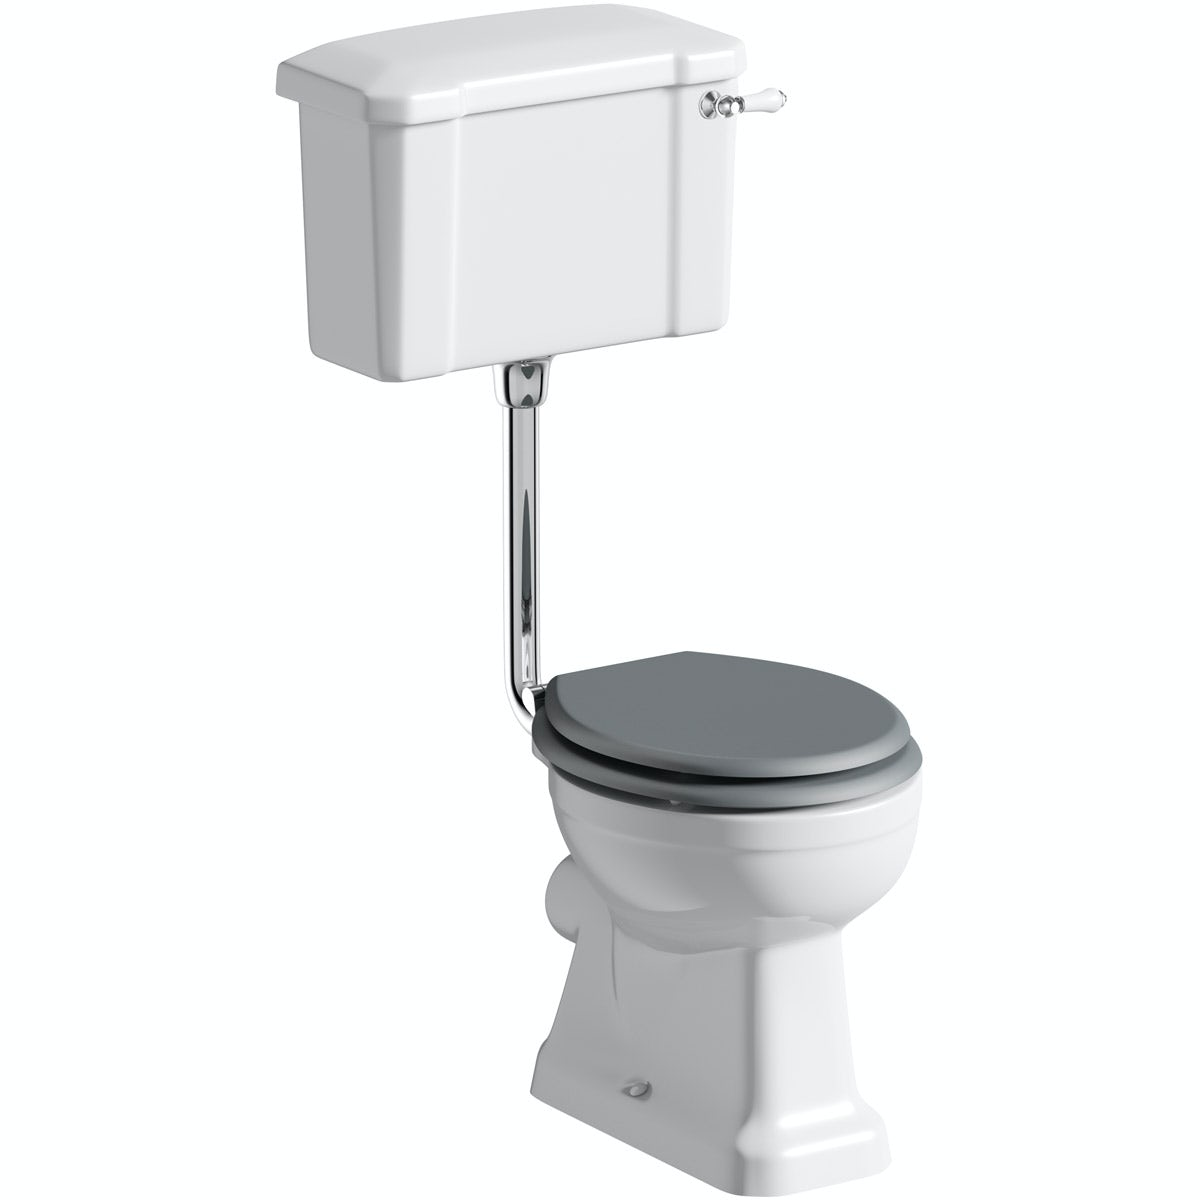 The Bath Co. Camberley low level toilet inc grey soft close seat with pan connector